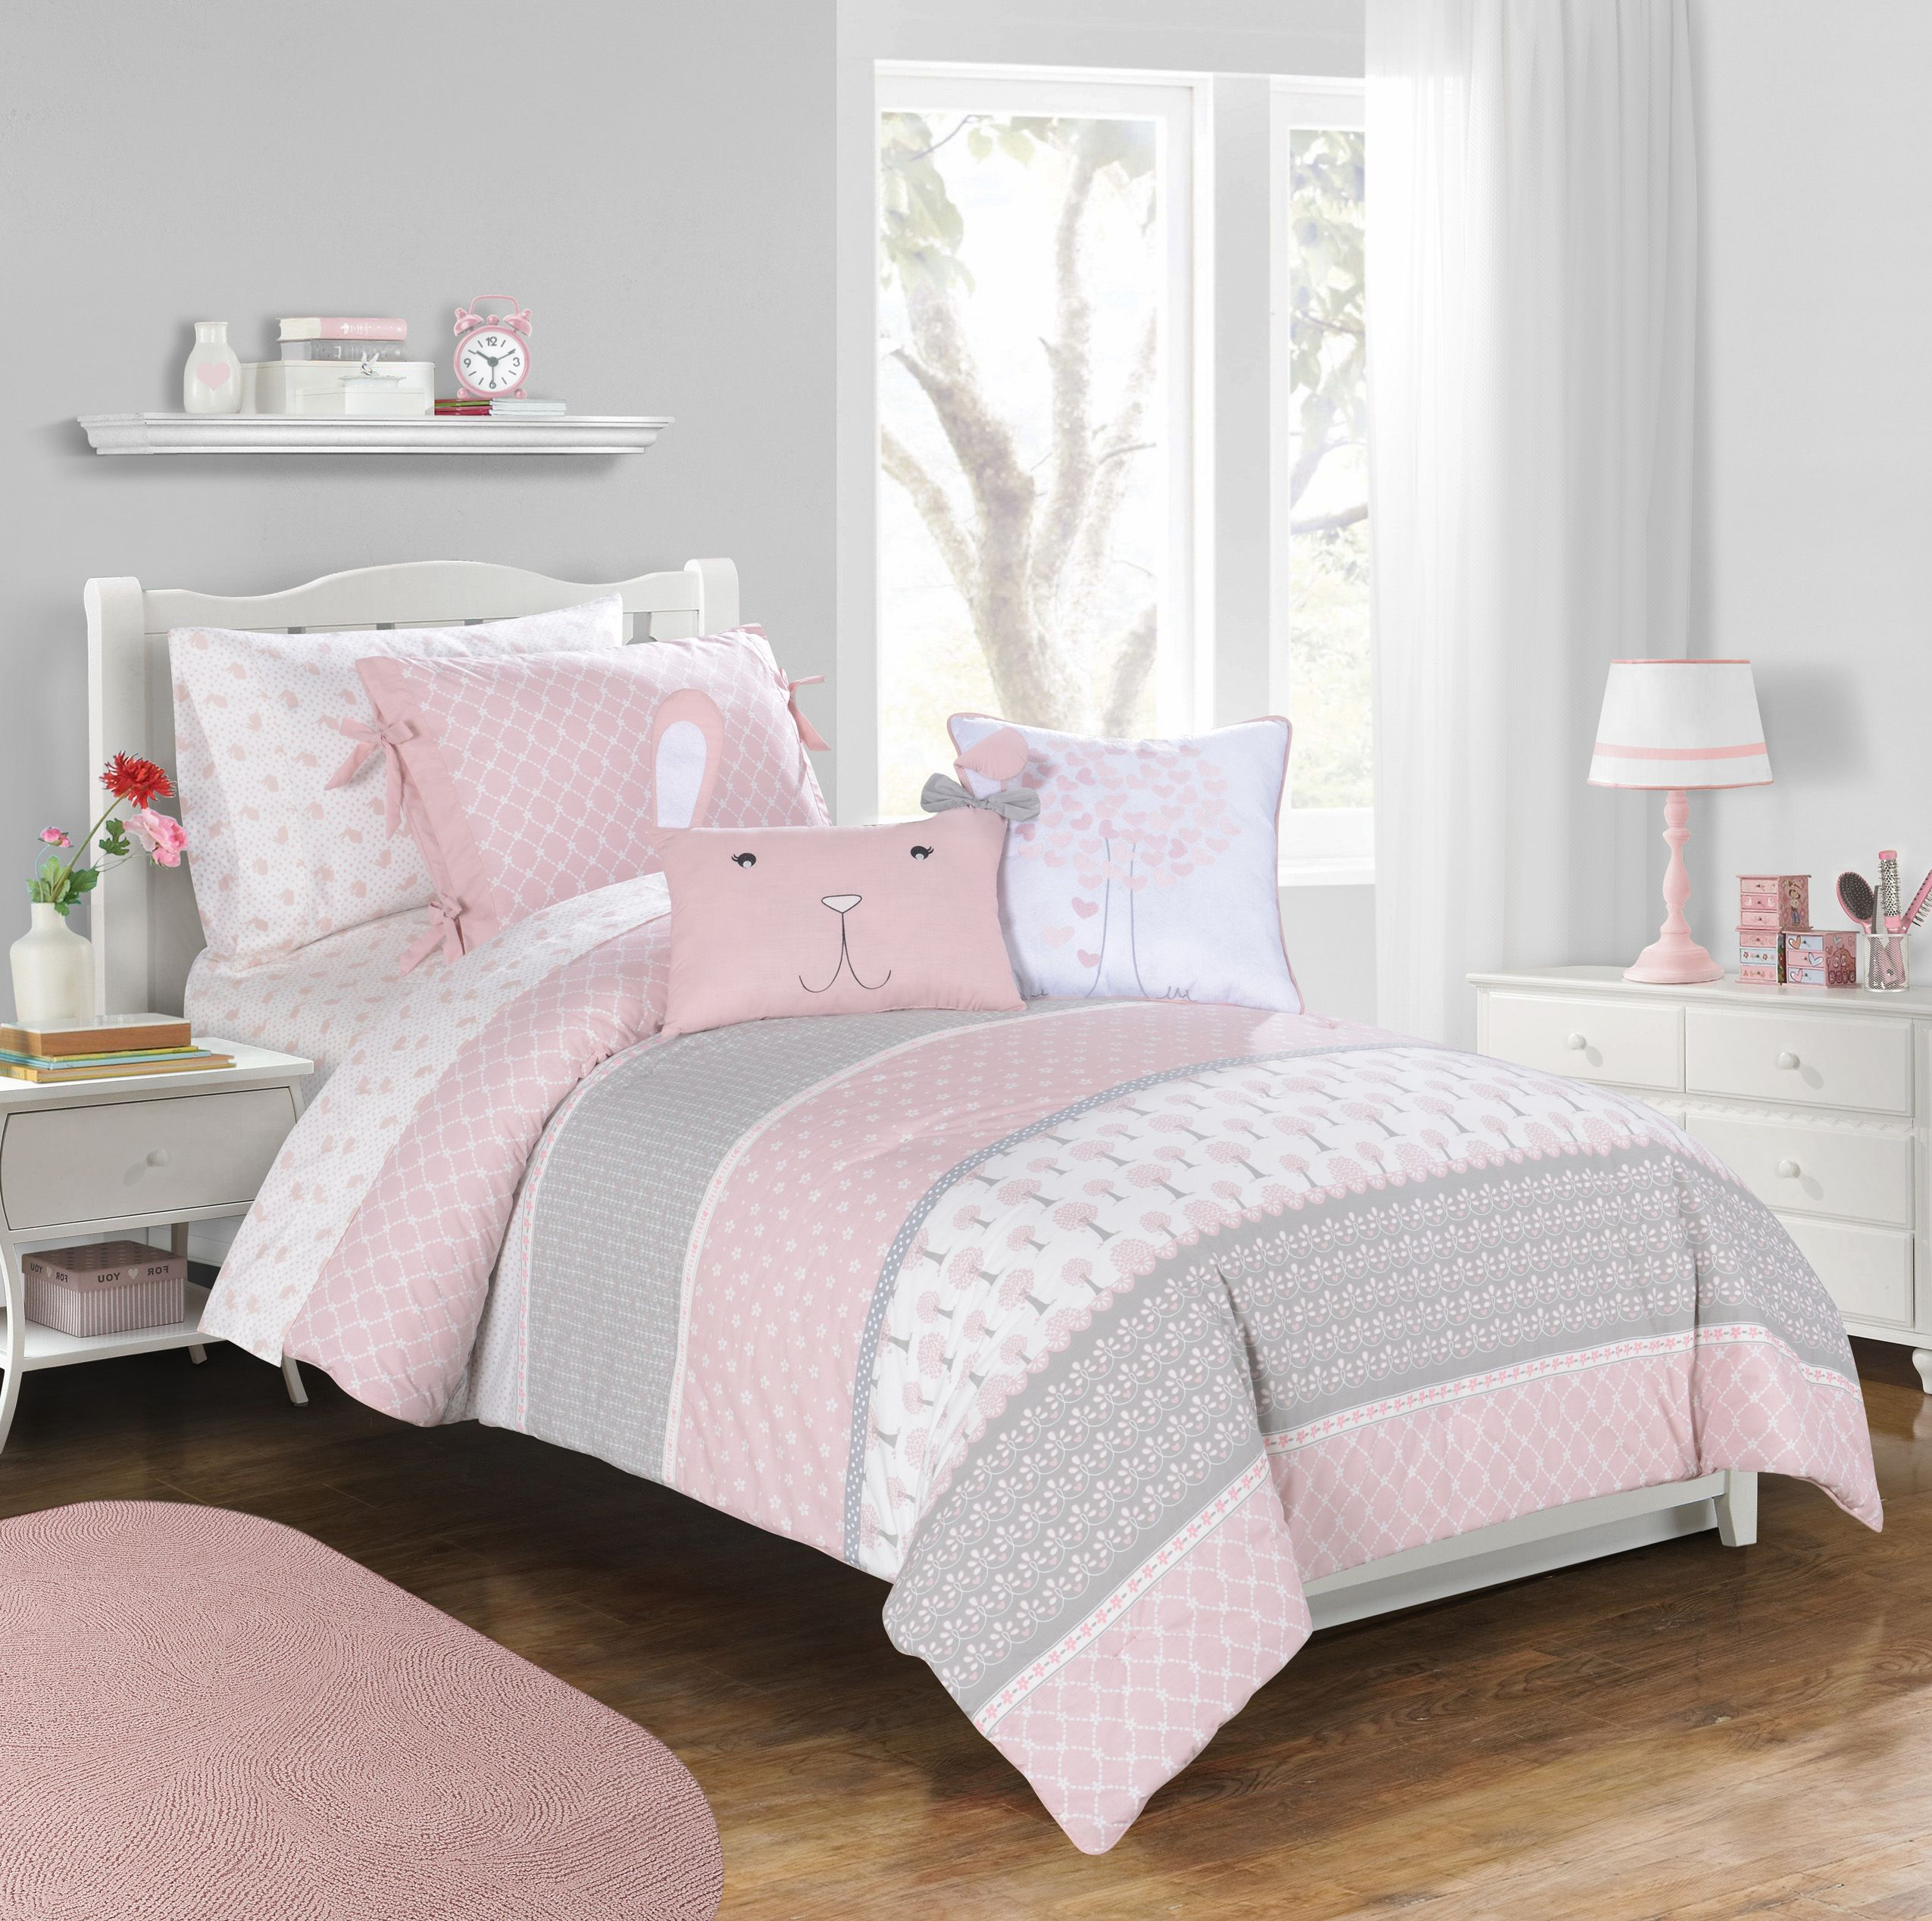 Heartwood Forest girls bedding collection by Frank + LuLu